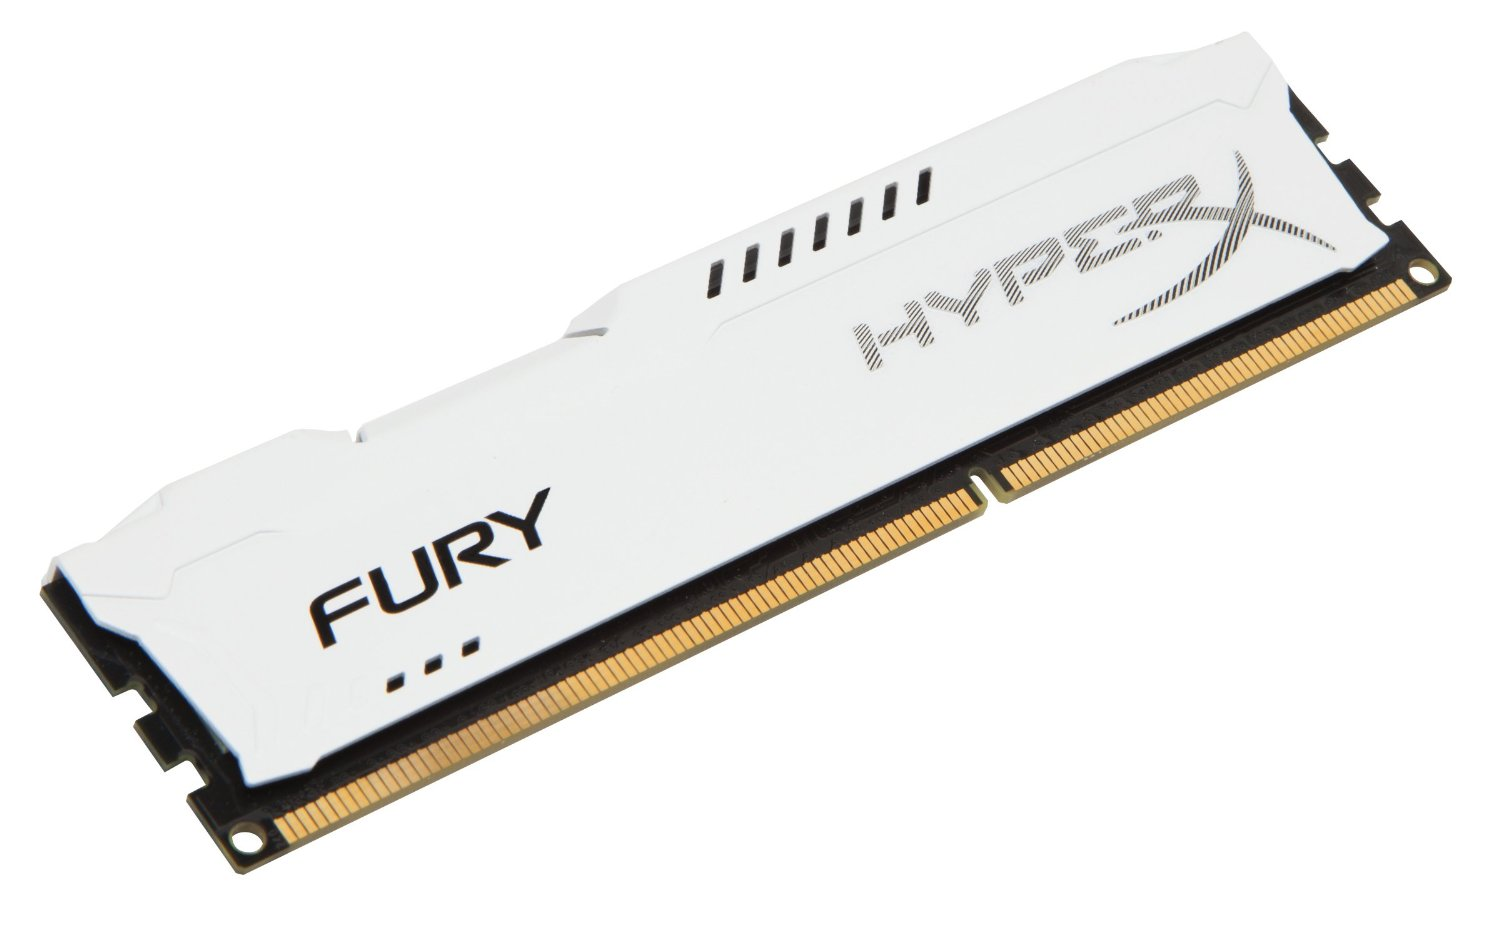 Ram Kingston 4G 1600MHZ DDR3 CL10 Dimm HyperX Fury White